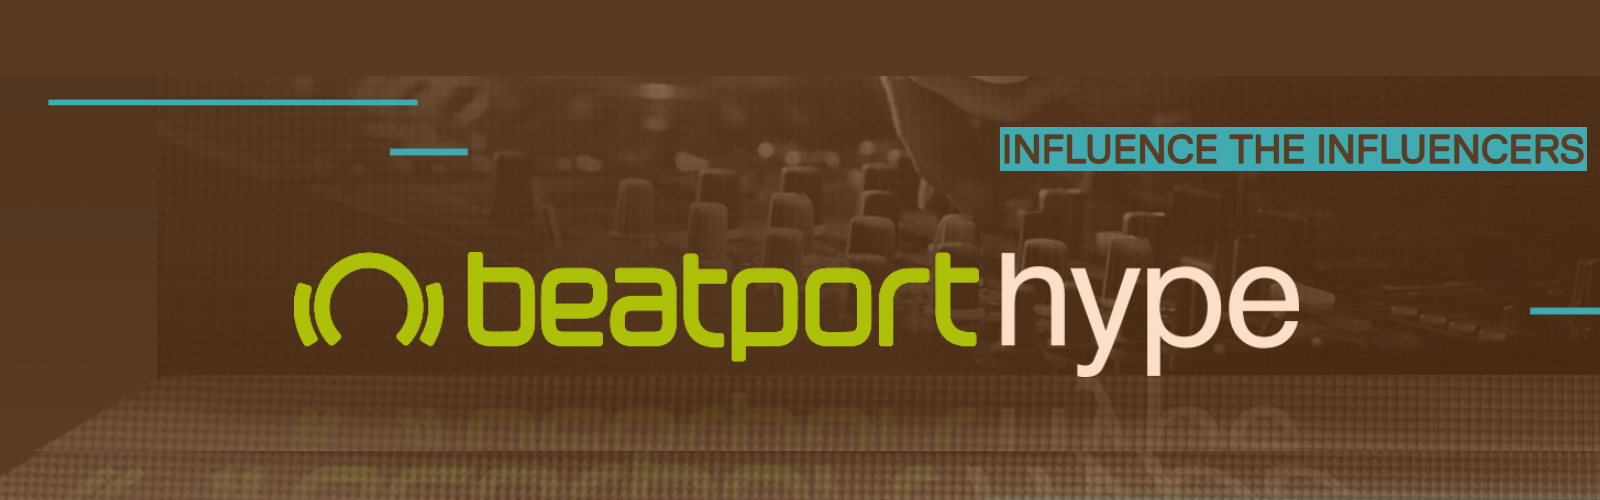 BEATPORT HYPE: a good deal for upcoming indie artists and labels?